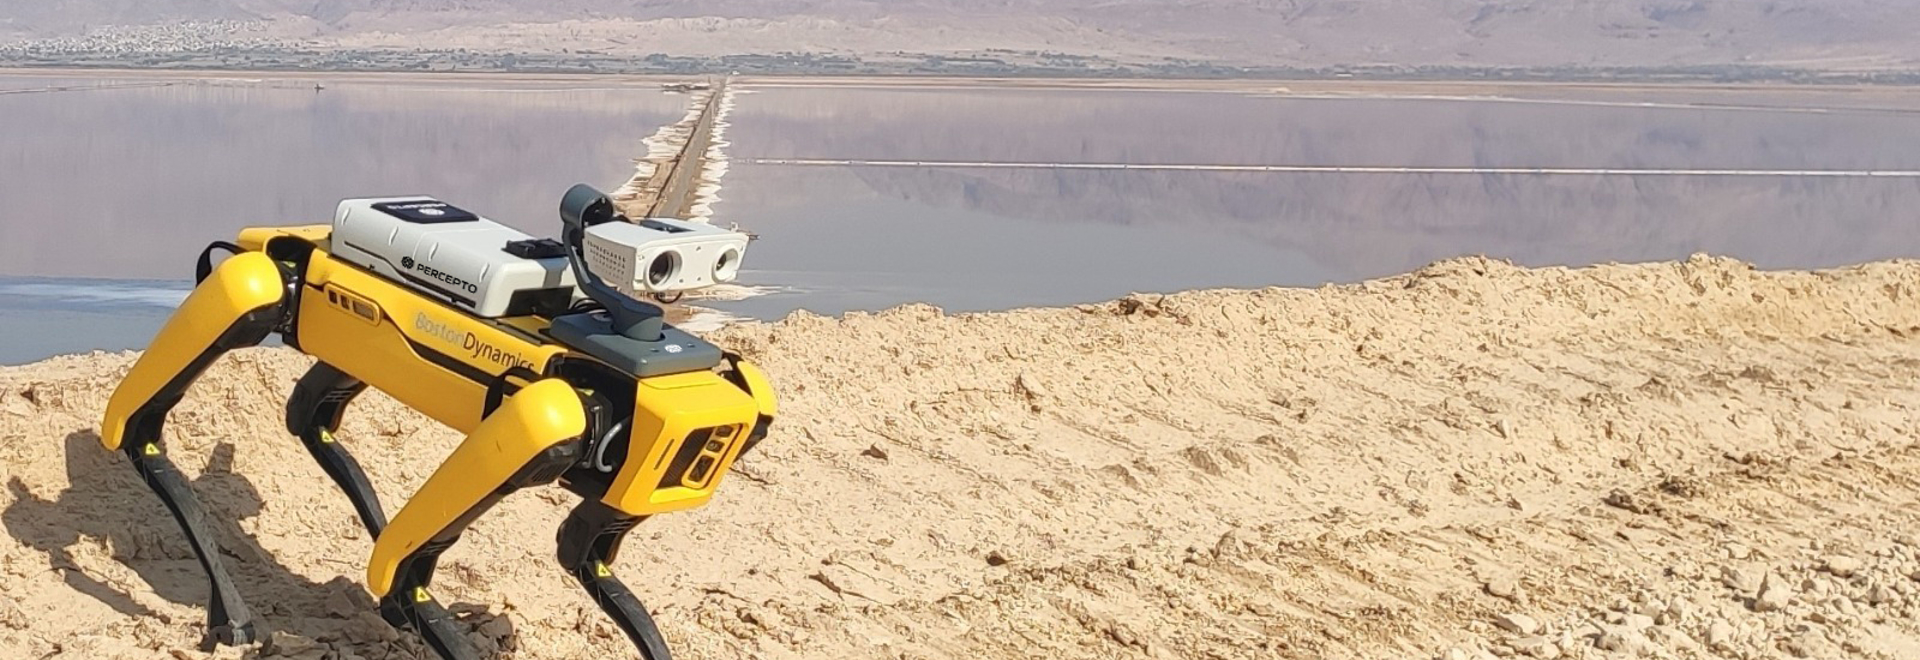 Combining Percepto's Sparrow drone with Spot creates a unique solution for remote inspection.